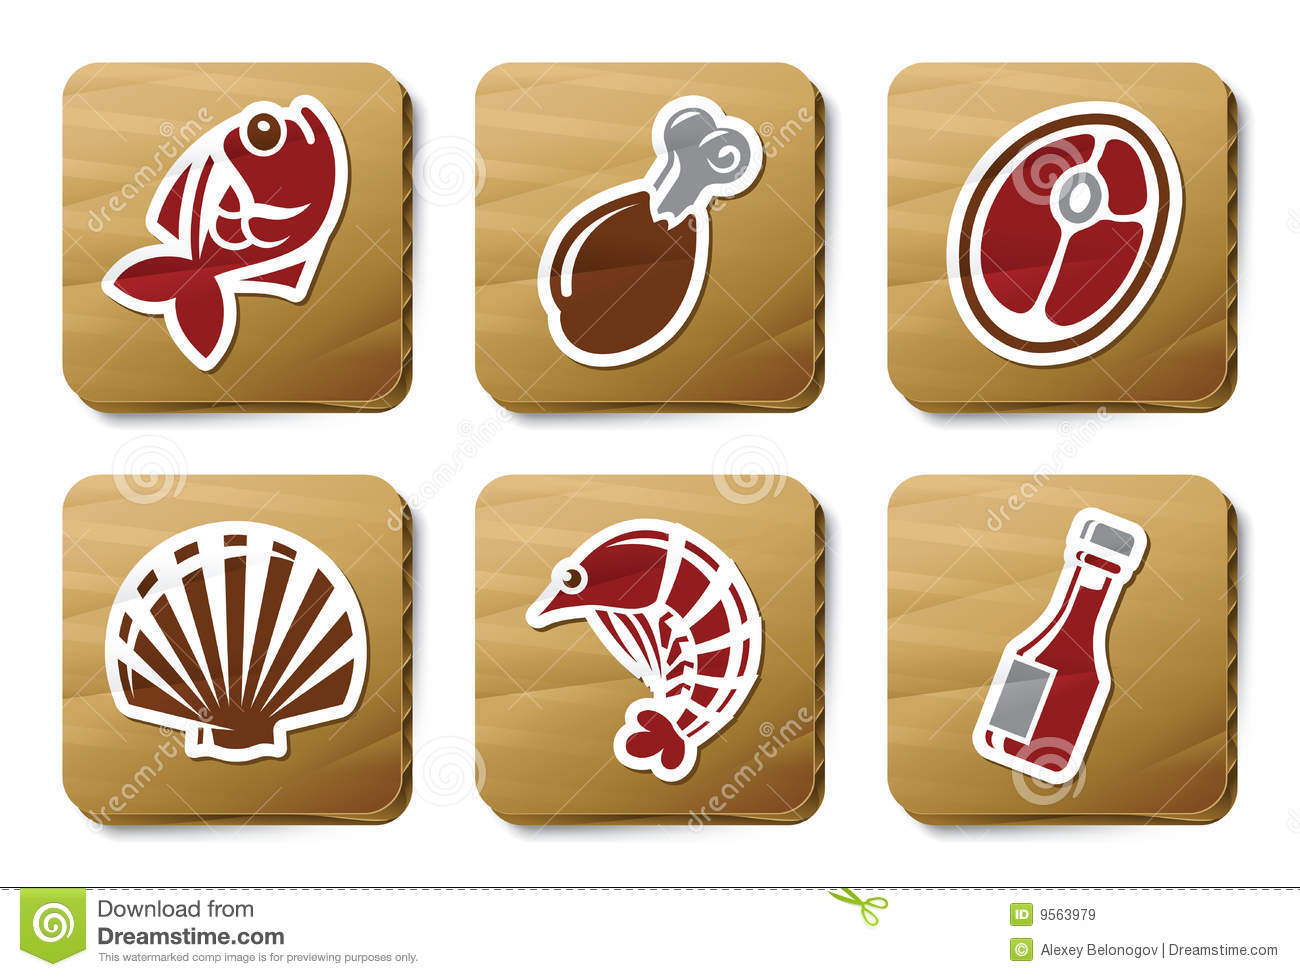 Fish, Seafoods and Meat icons | Cardboard series